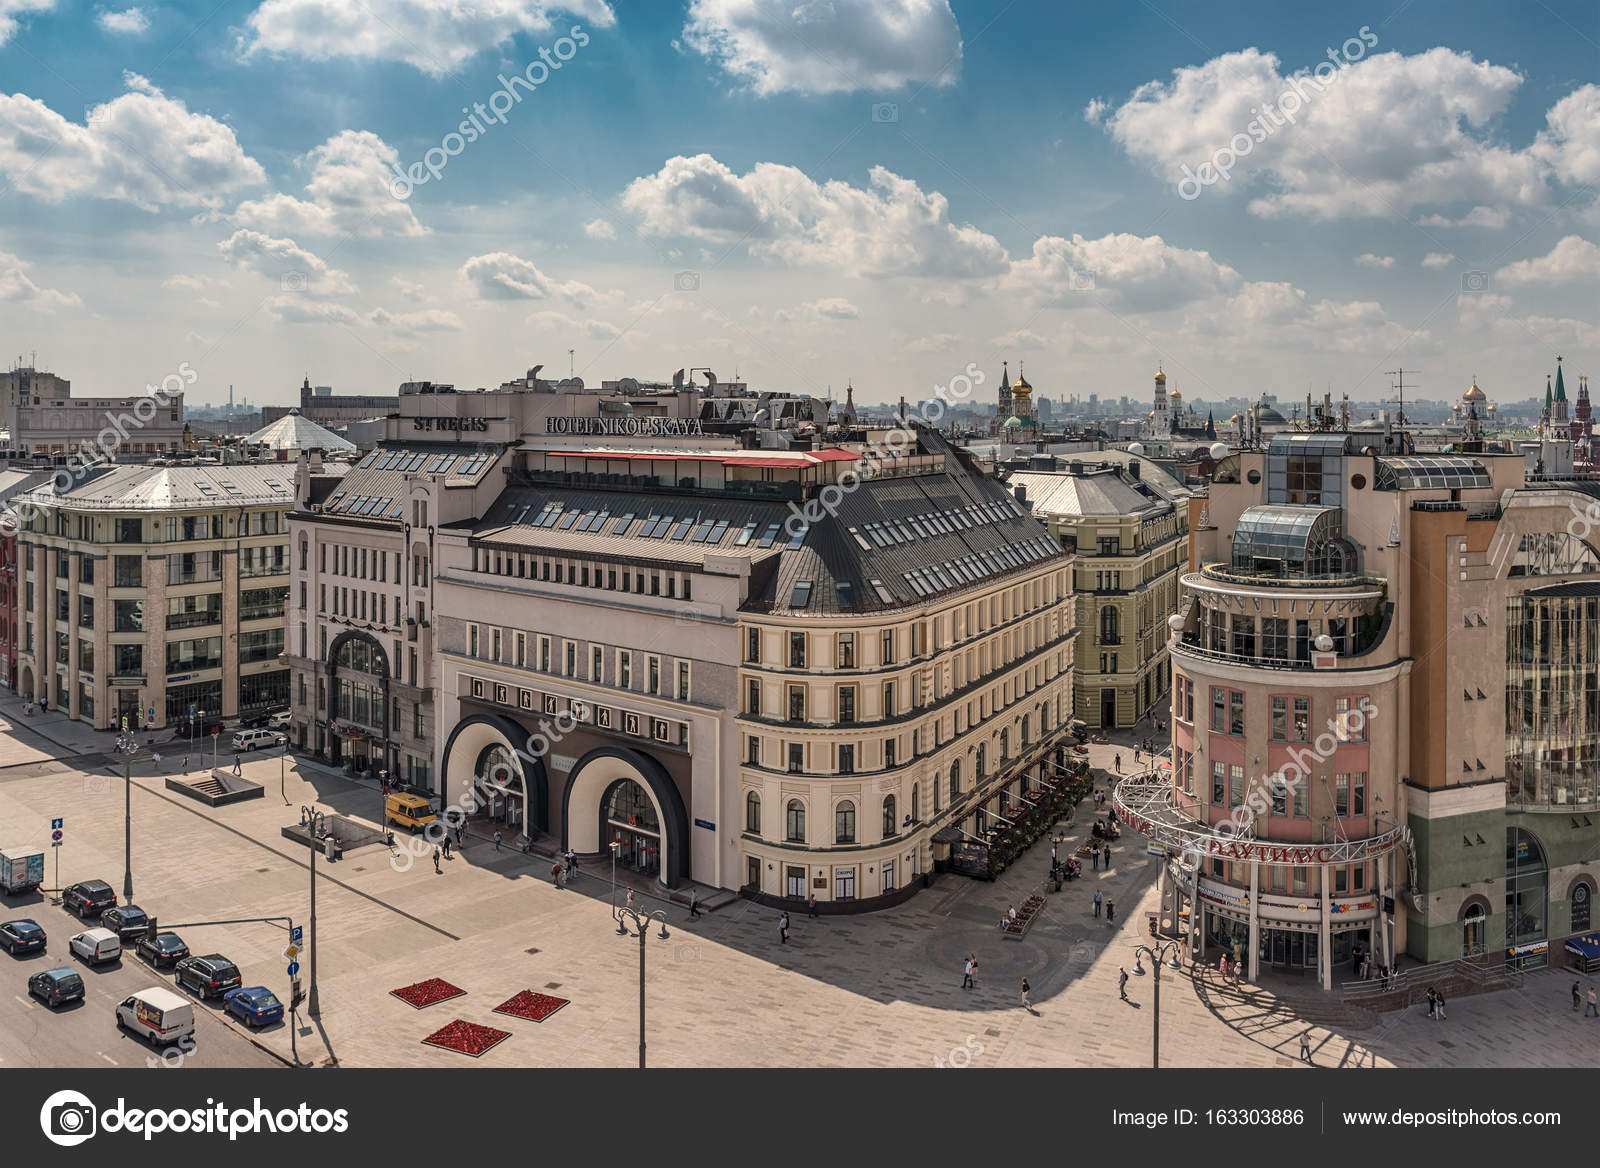 Moscow. July 27, 2017. Top view of Lubyanka Square ...